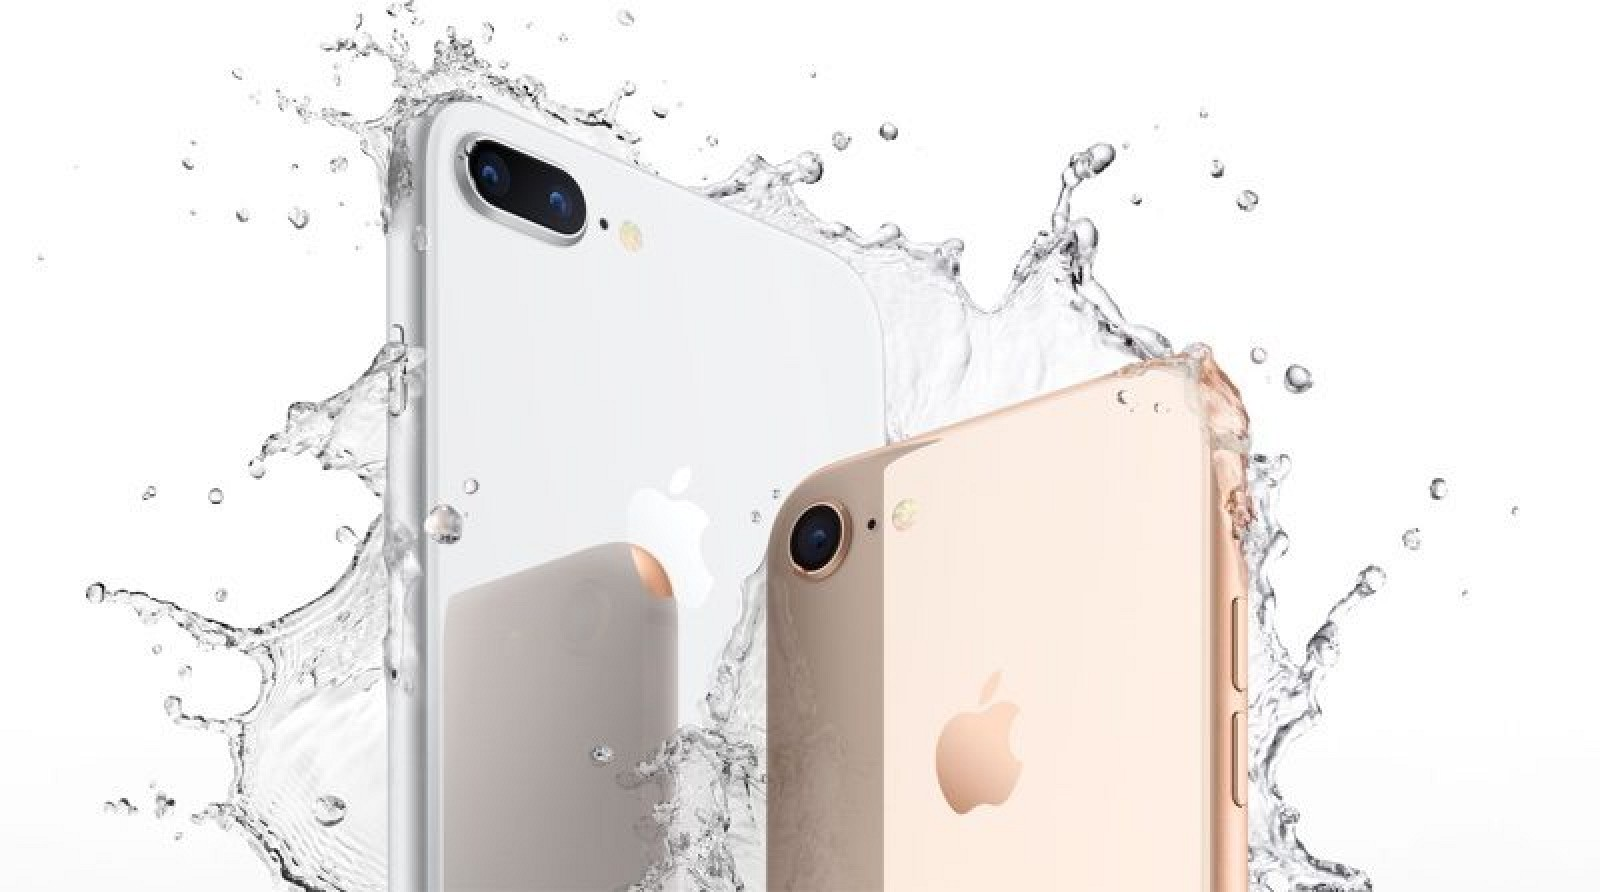 iphone8splashy